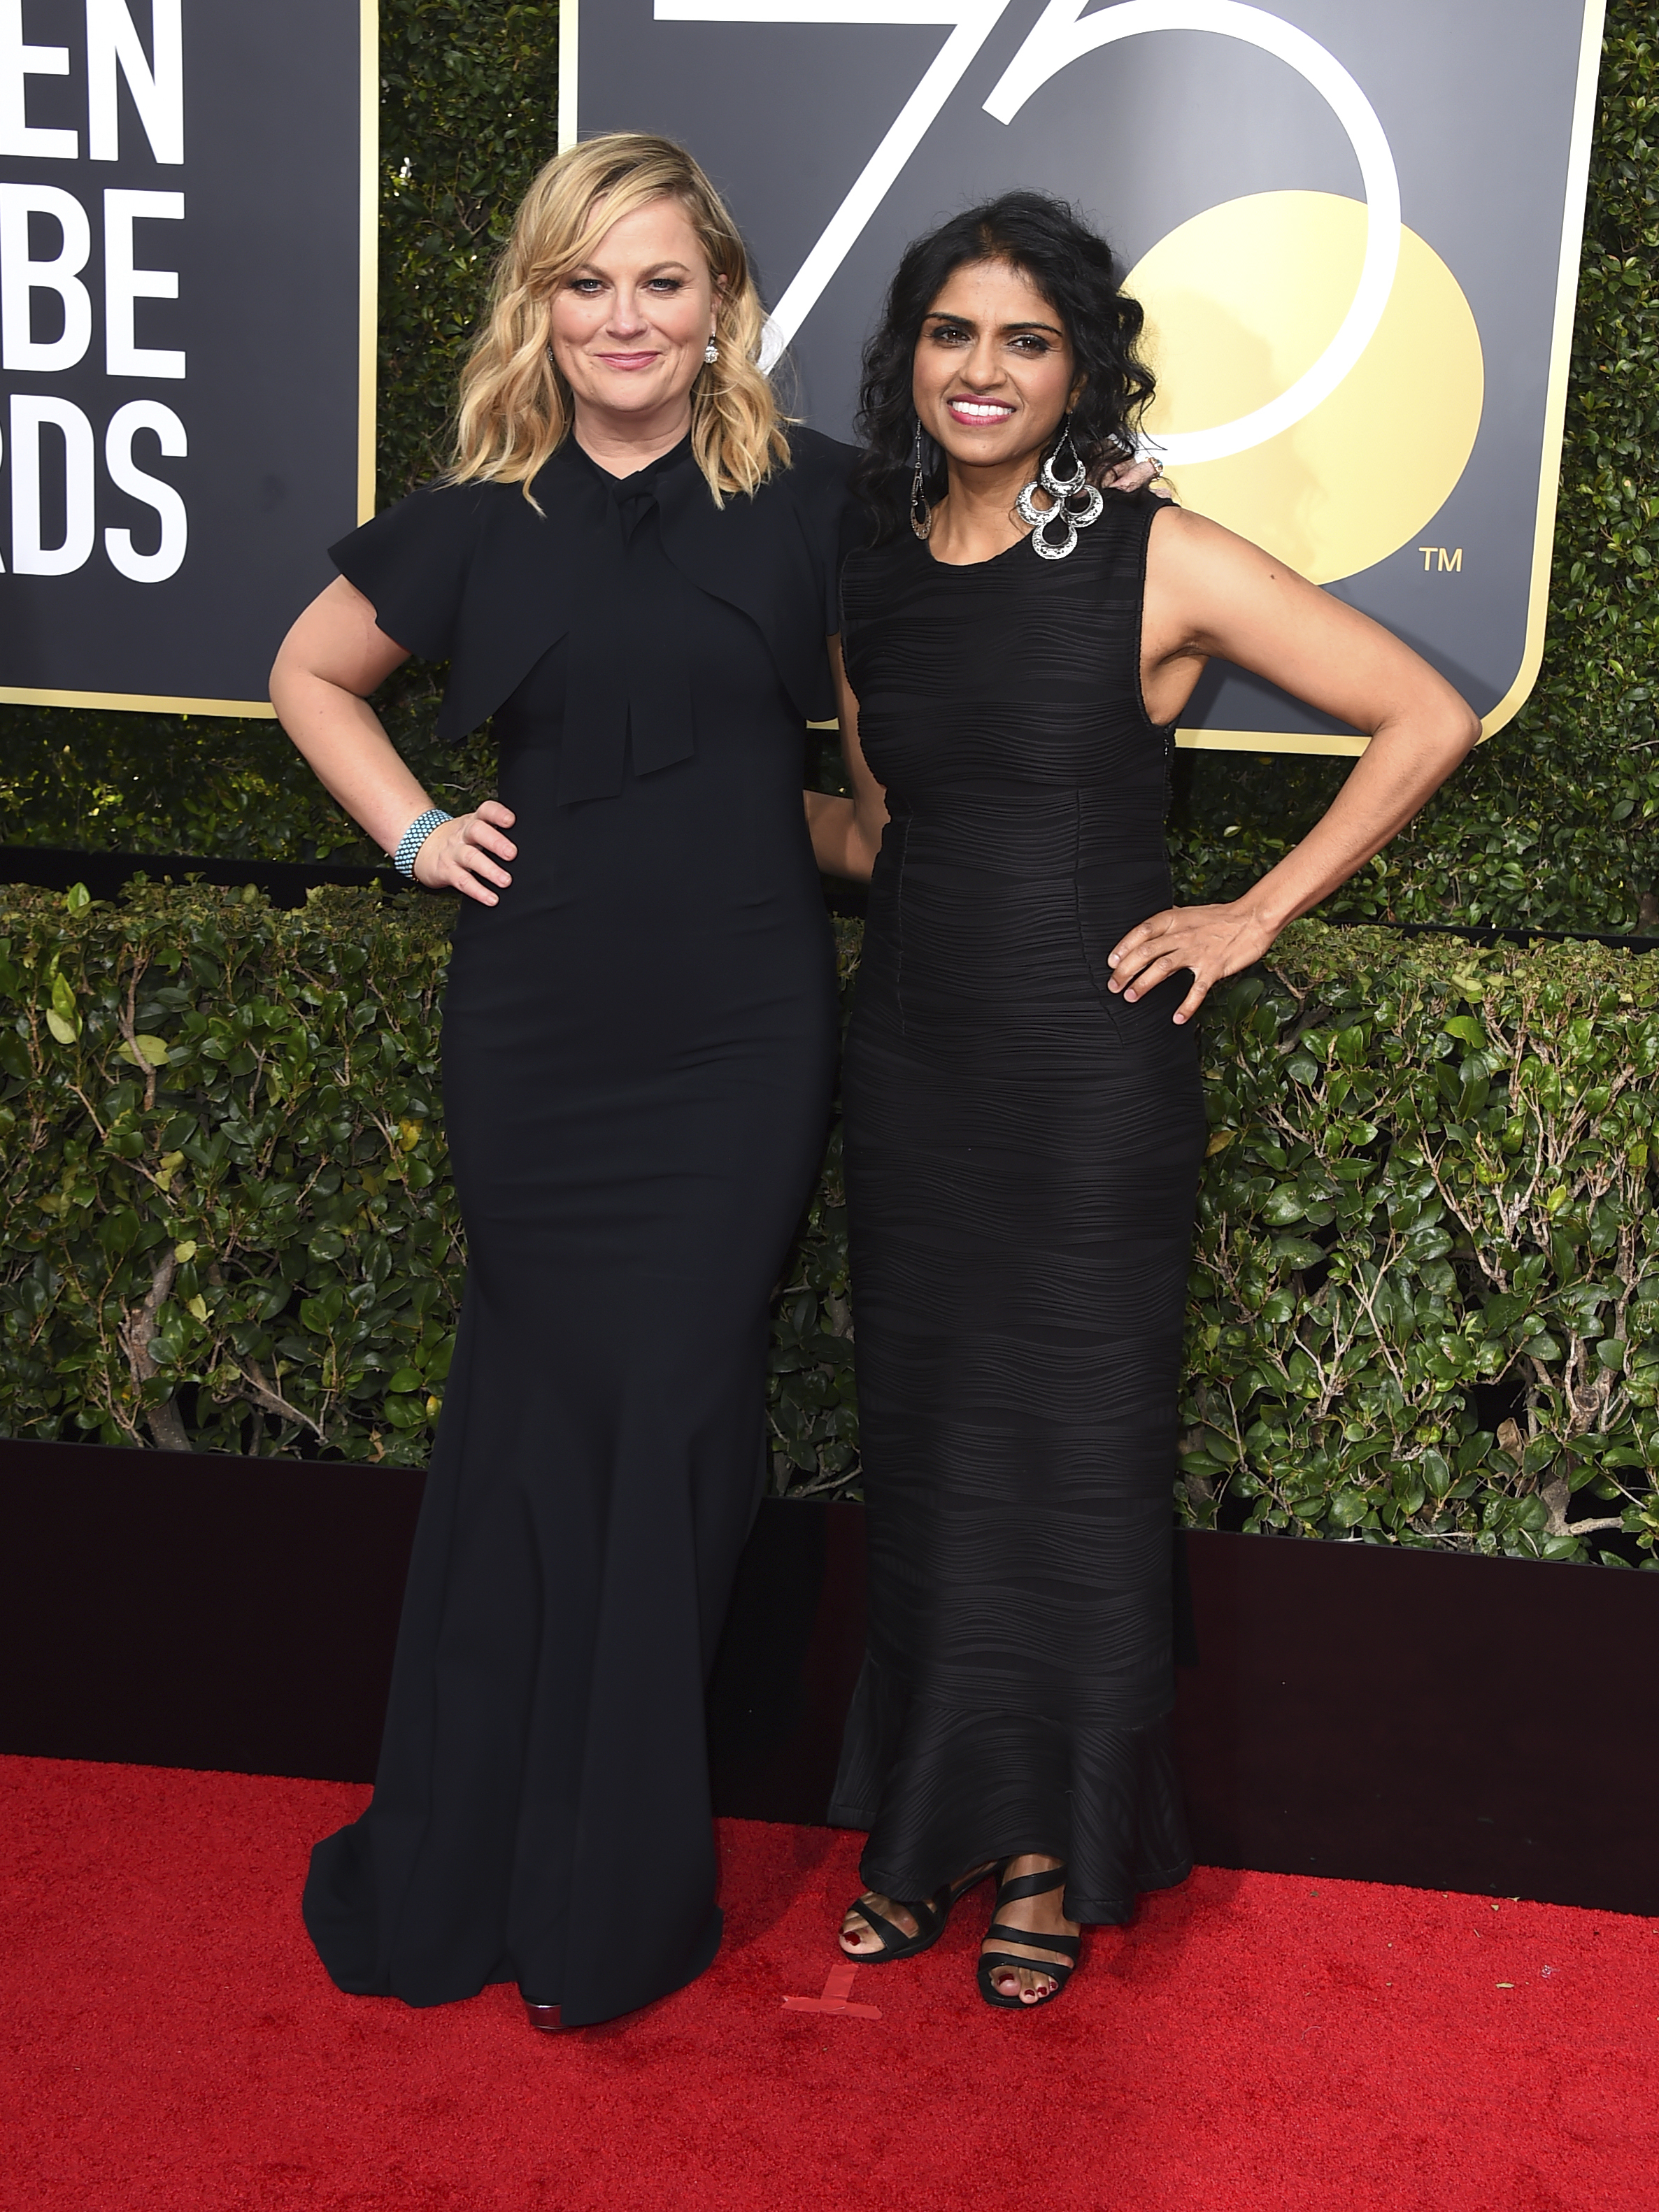 <div class='meta'><div class='origin-logo' data-origin='AP'></div><span class='caption-text' data-credit='Jordan Strauss/Invision/AP'>Amy Poehler, left, and Saru Jayaraman arrive at the 75th annual Golden Globe Awards at the Beverly Hilton Hotel on Sunday, Jan. 7, 2018, in Beverly Hills, Calif.</span></div>